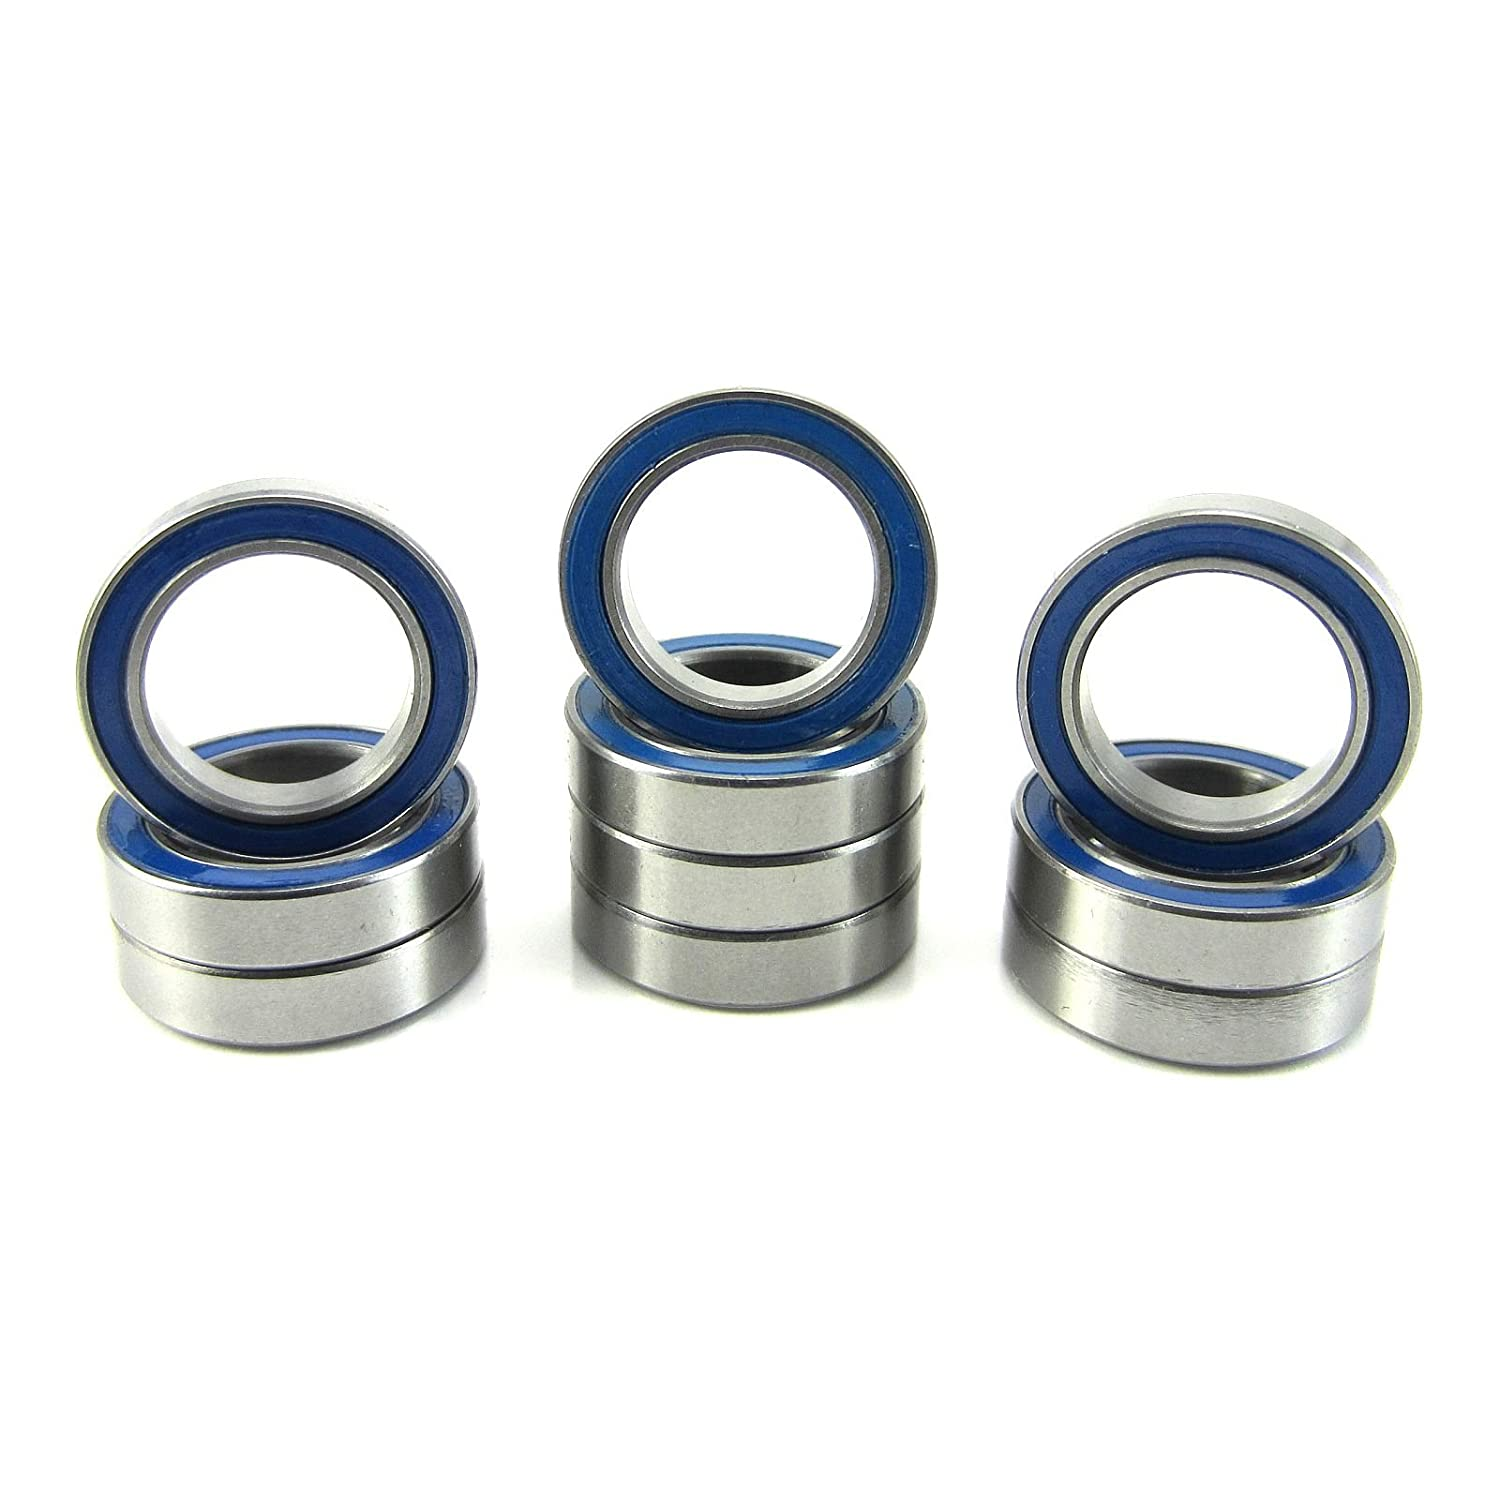 12x18x4mm Precision Ball Bearings ABEC 3 Rubber Seals (10) 6701-2RS-BU